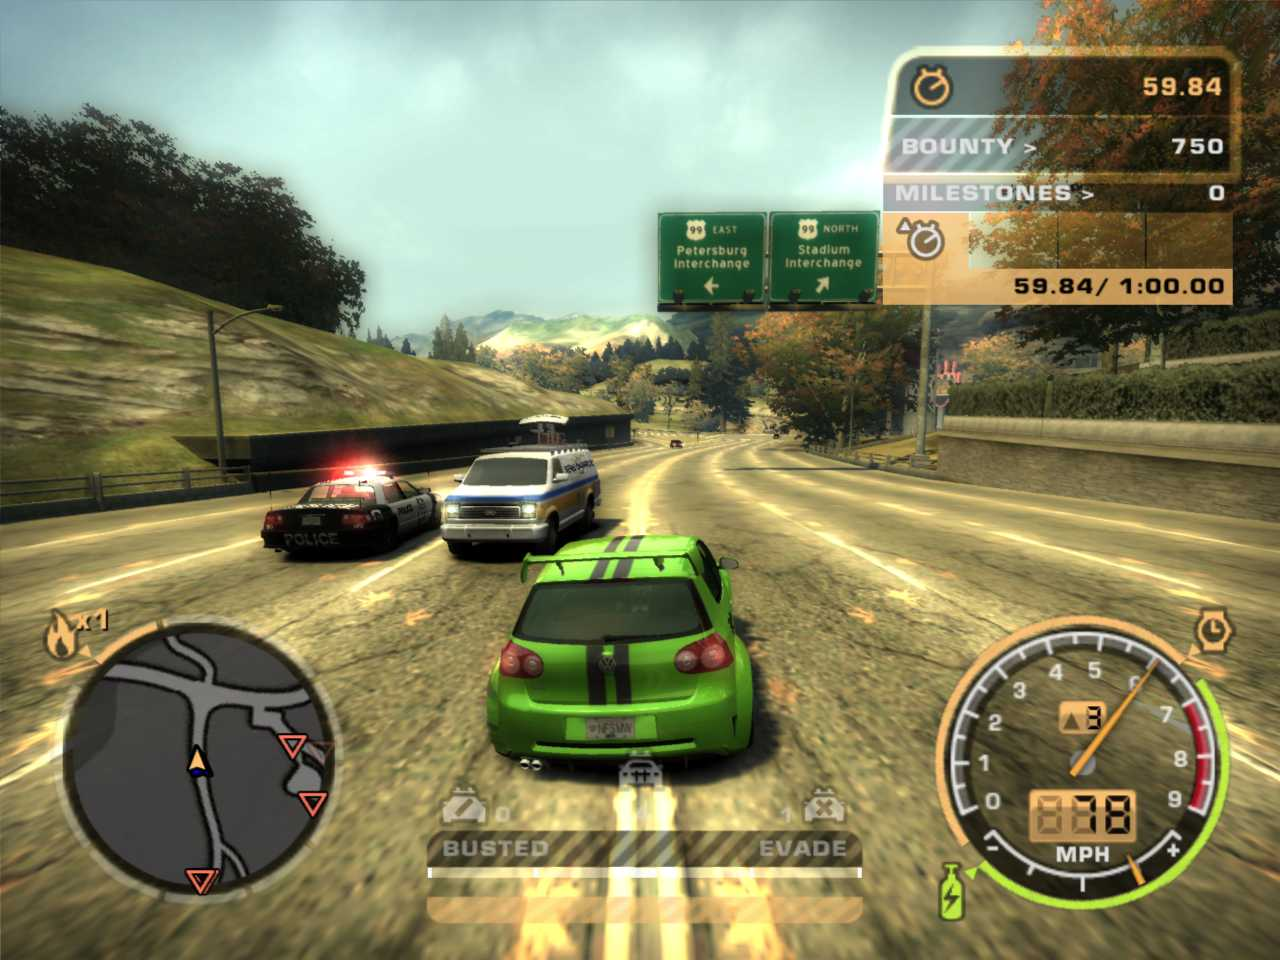 nfs_most_wanted_test_sc6 تحميل لعبة need for speed most wanted للكمبيوتر والاندرويد العاب اندرويد تحميل العاب كمبيوتر